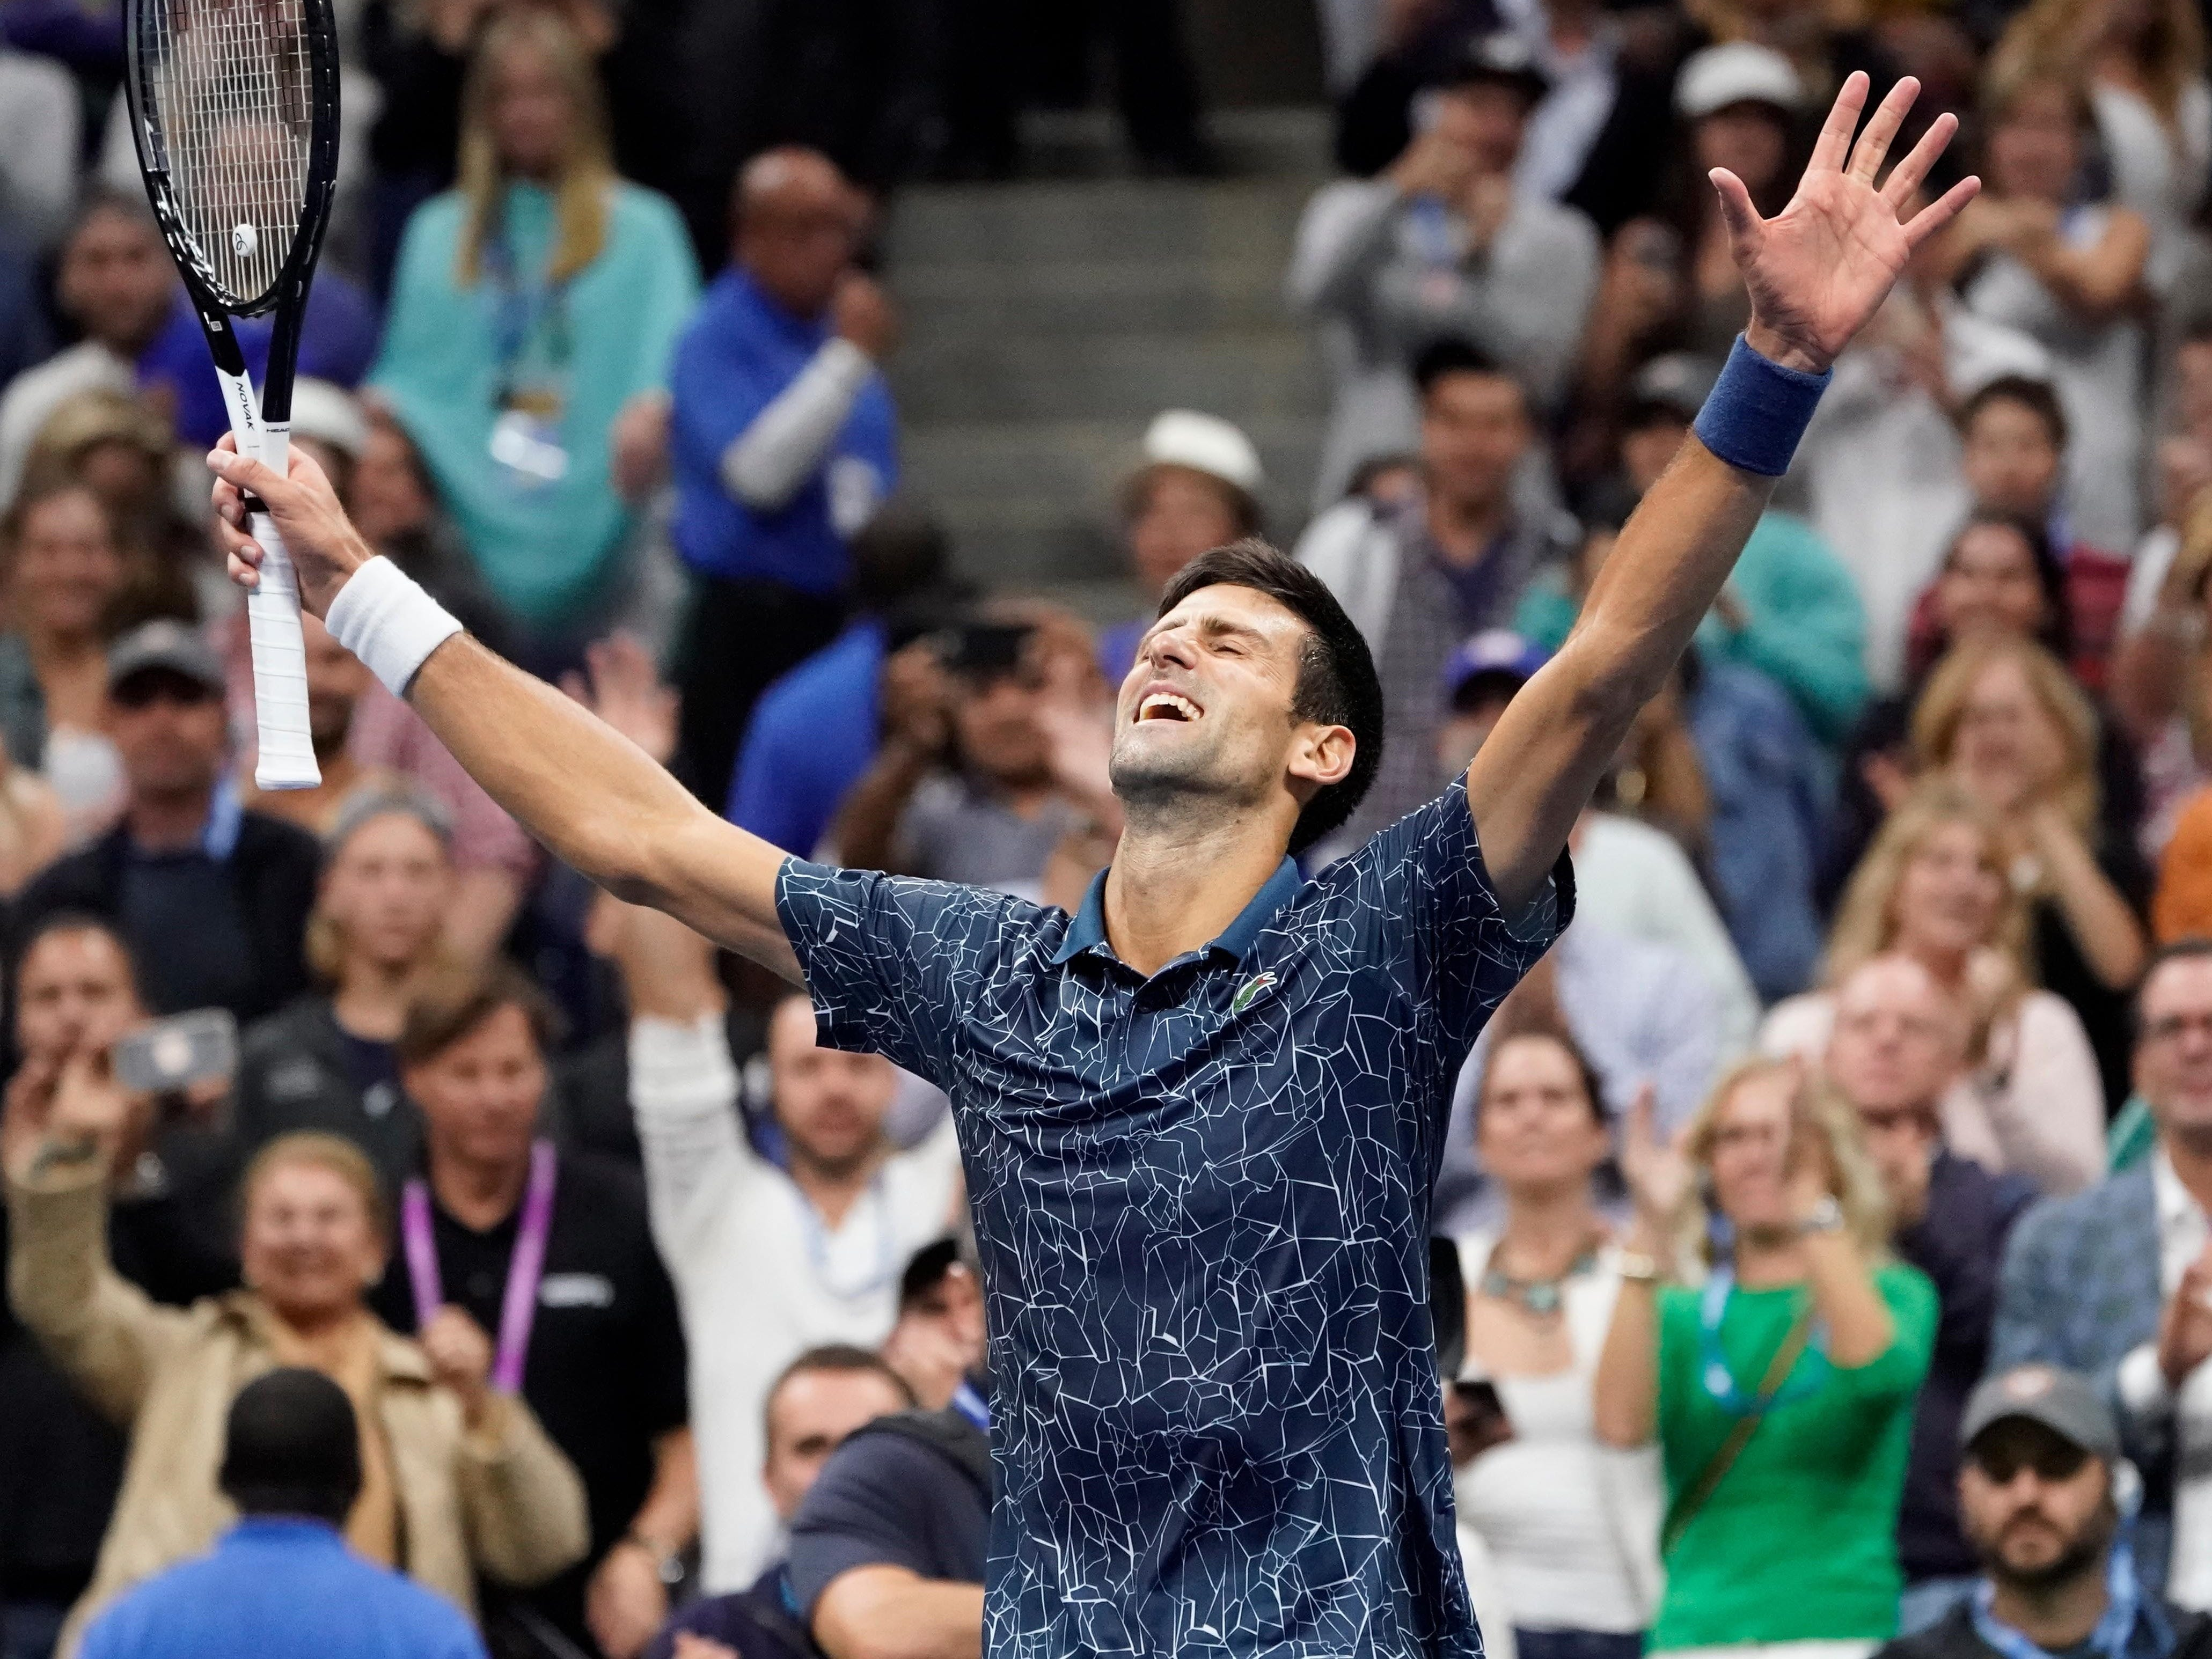 Novak Djokovic celebrates after clinching match point against Juan Martin del Potro.